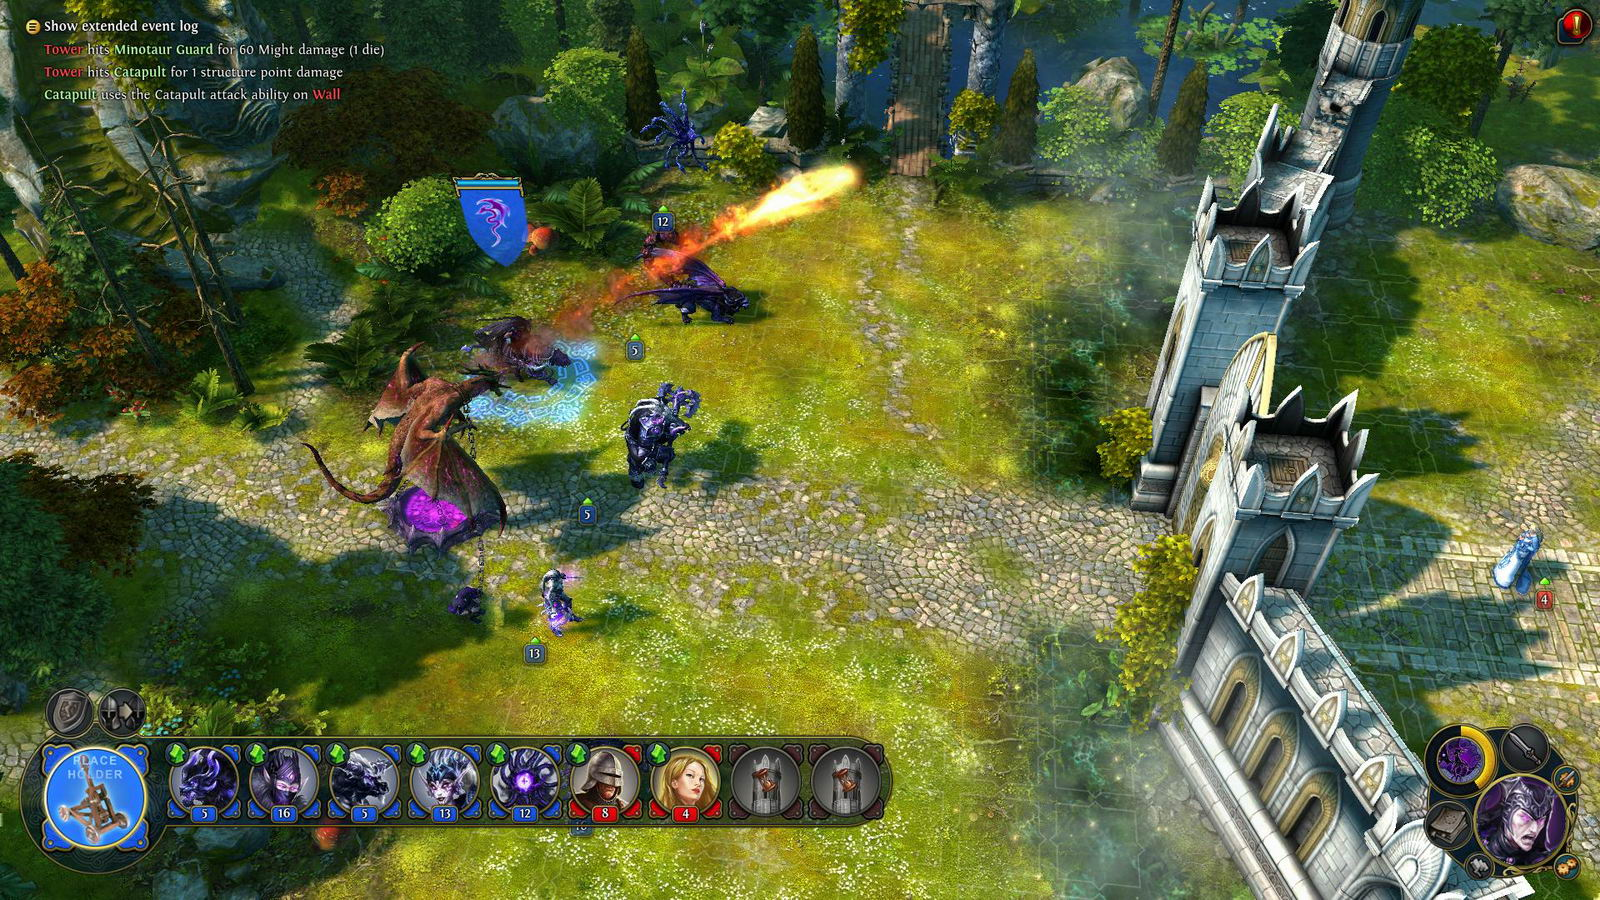 Скриншот Might & Magic Heroes VI - Shades of Darkness